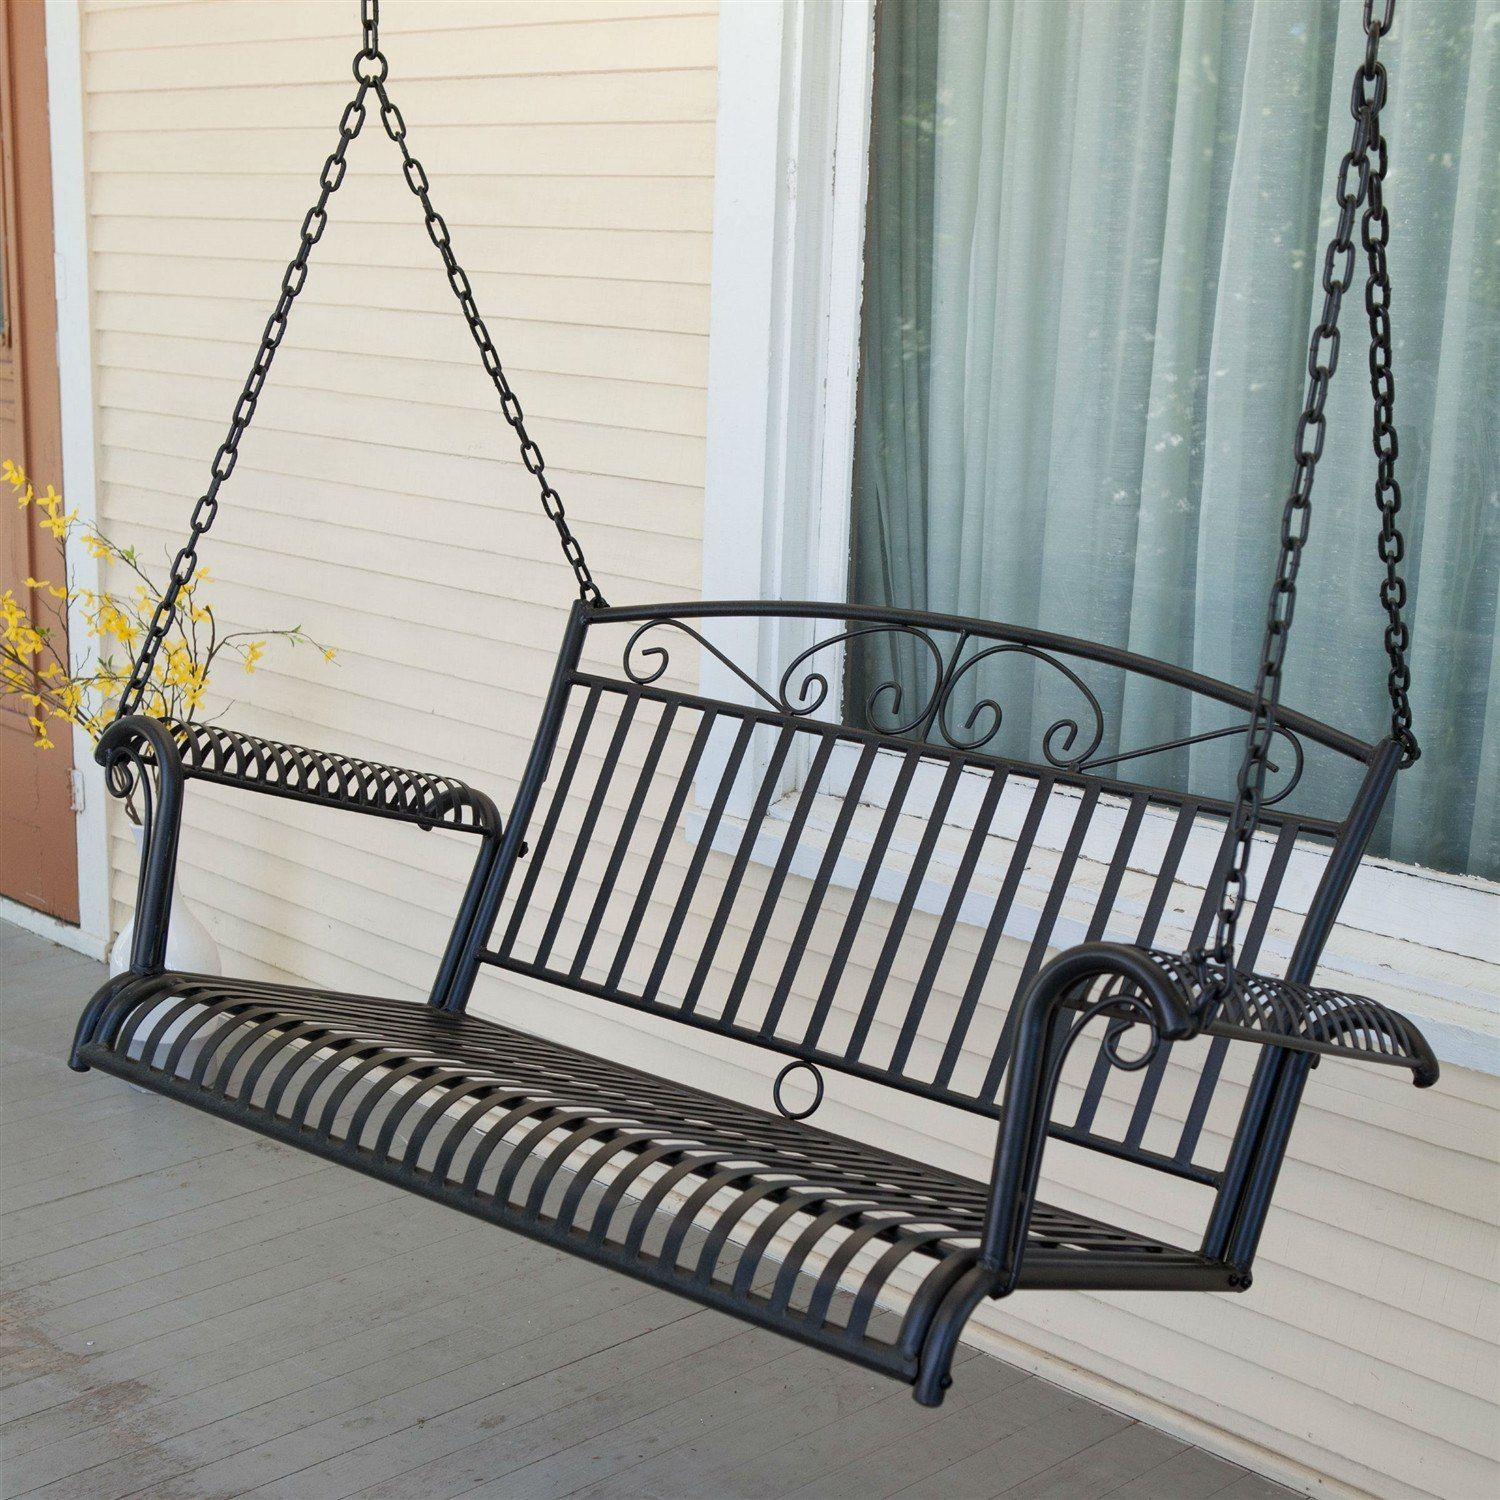 Wrought Iron Outdoor Patio 4 Ft Porch Swing In Black | Porch Intended For 2 Person Hammered Bronze Iron Outdoor Swings (View 3 of 25)